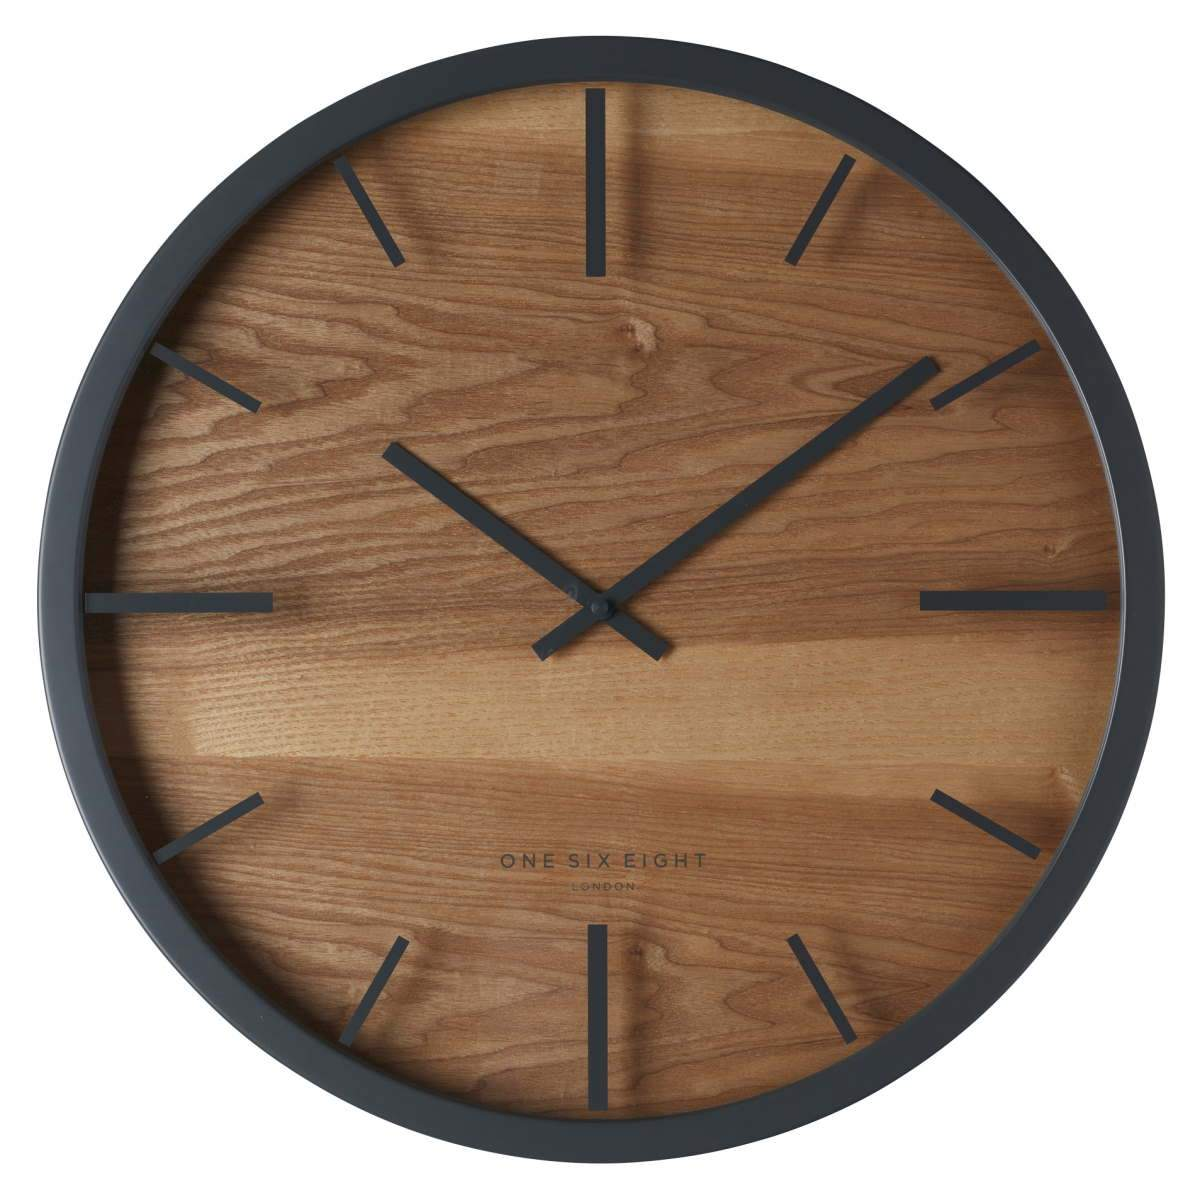 One Six Eight London Willow Wooden Wall Clock Charcoal Grey 50cm 21033 1